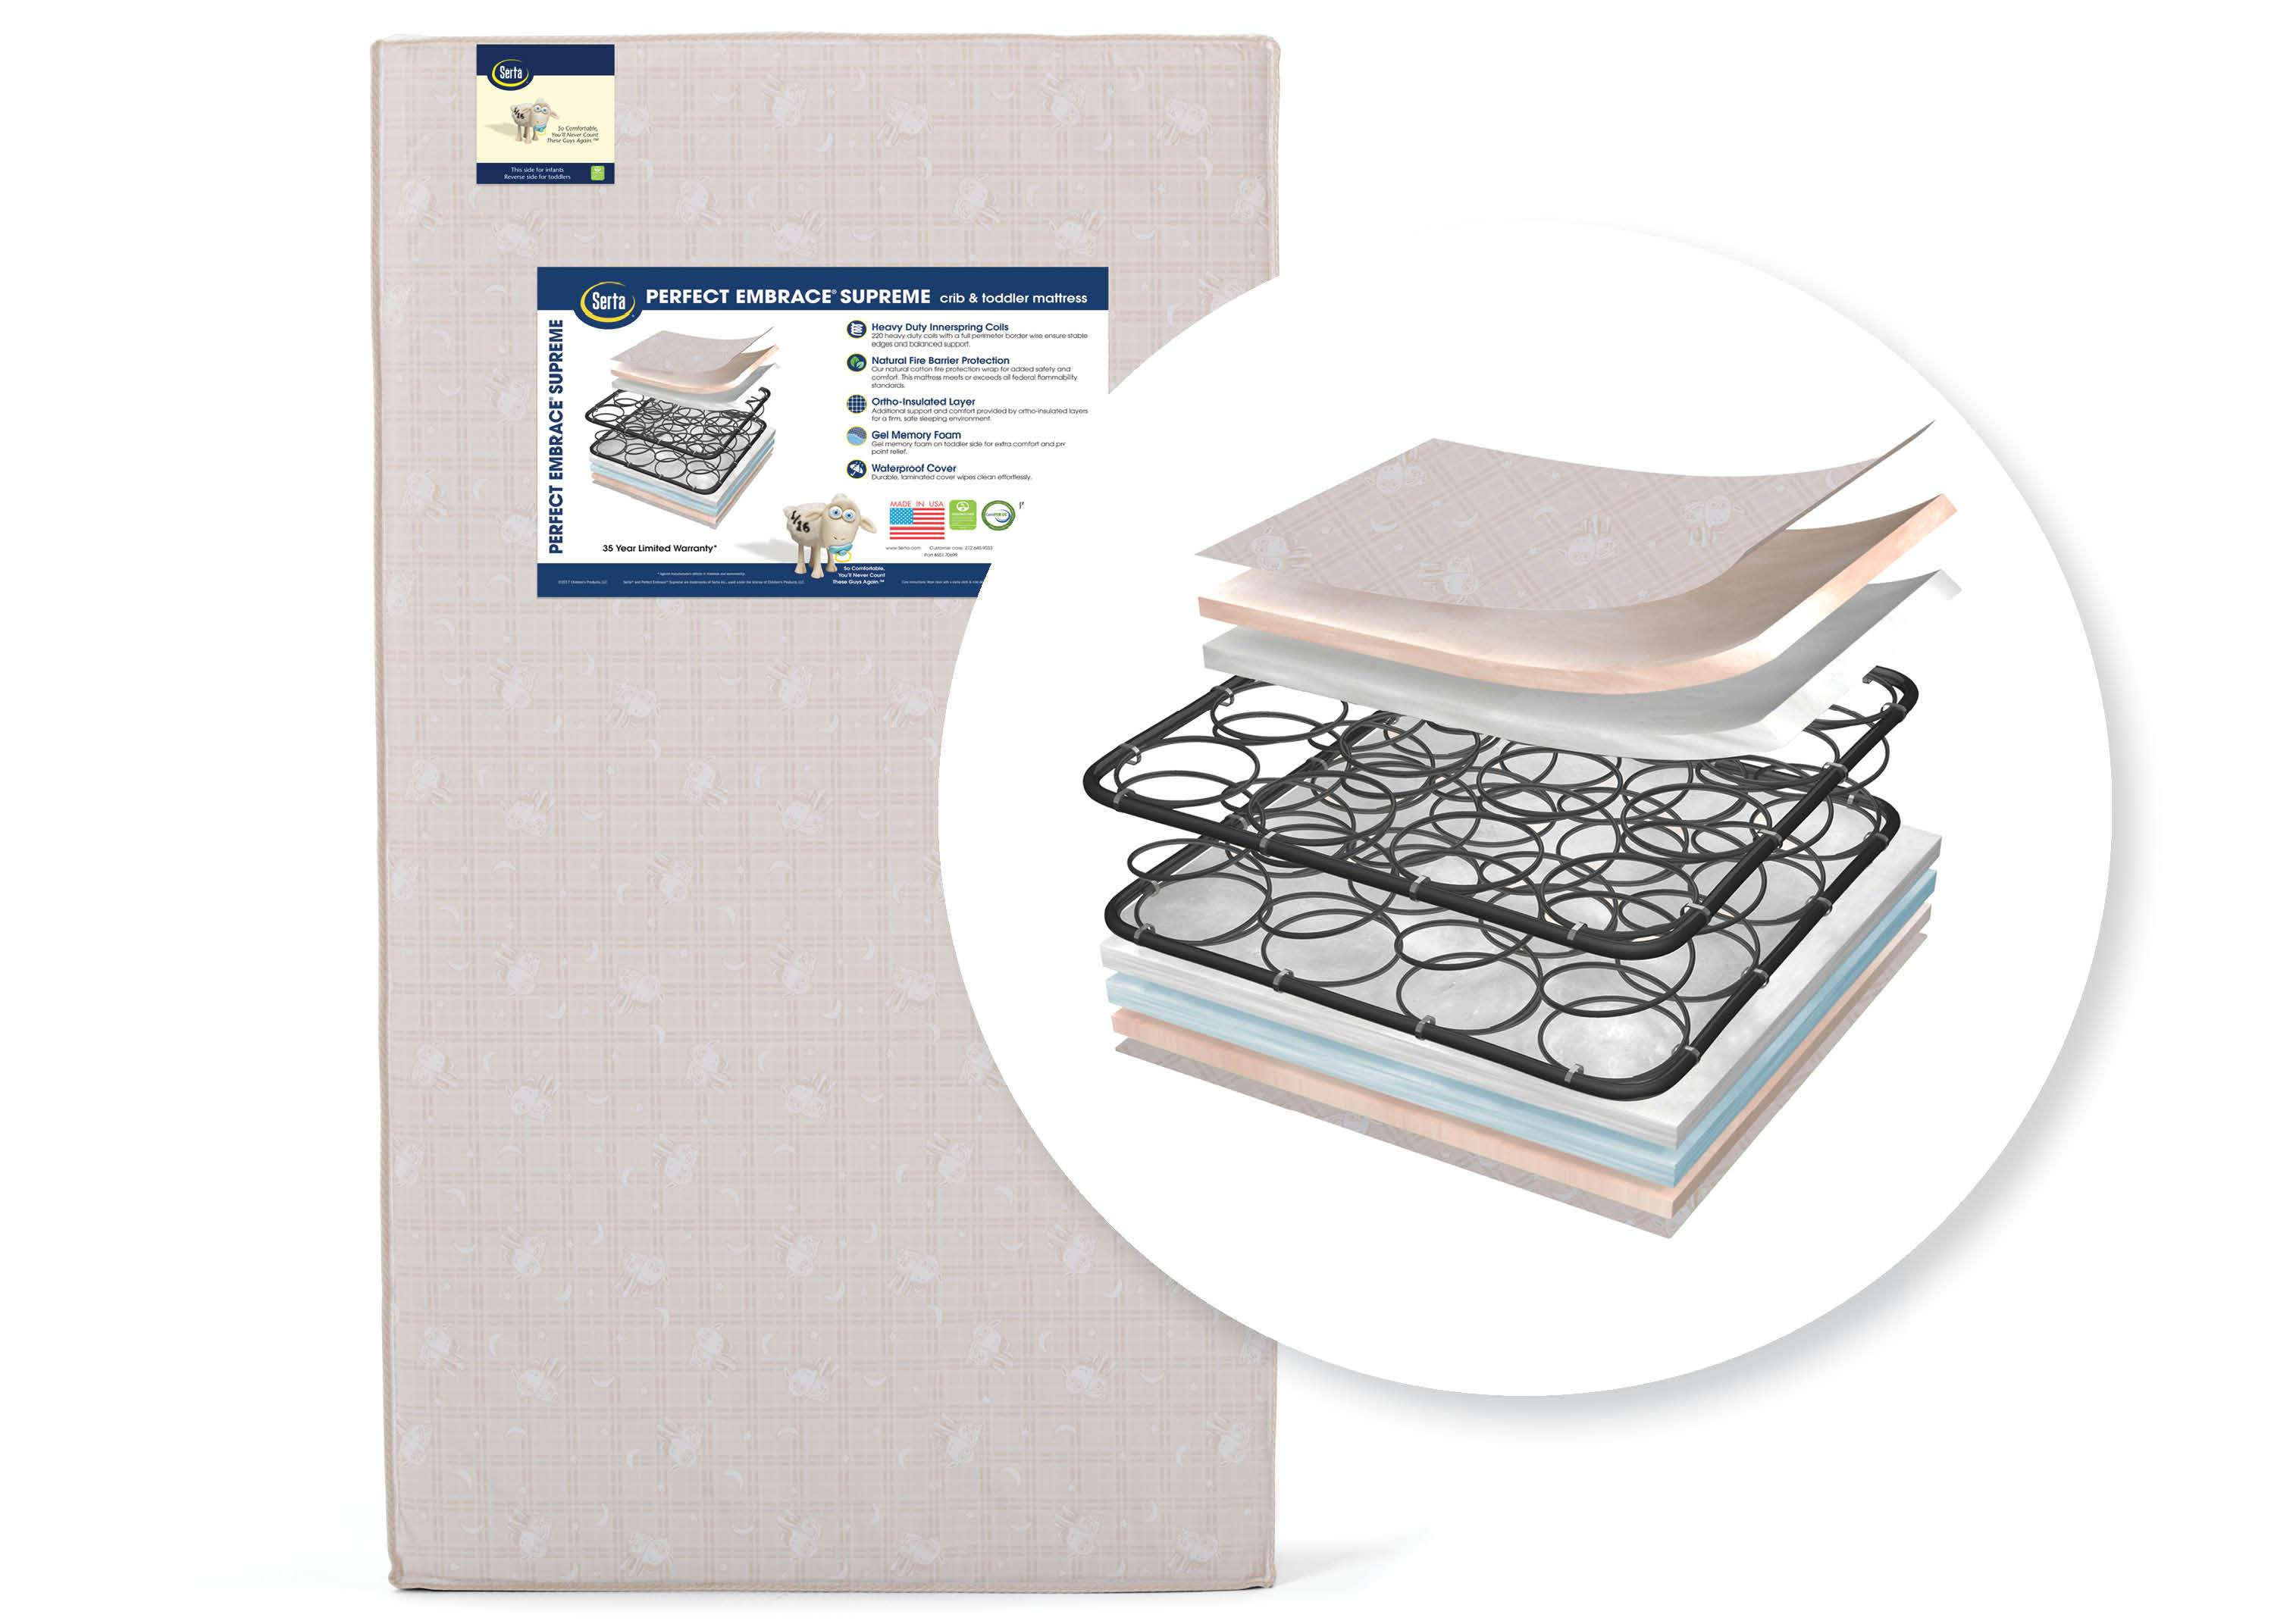 queen choice products of best mattress dual mattresses zeopedic serta charm a awesome box amazing layered foam in memory